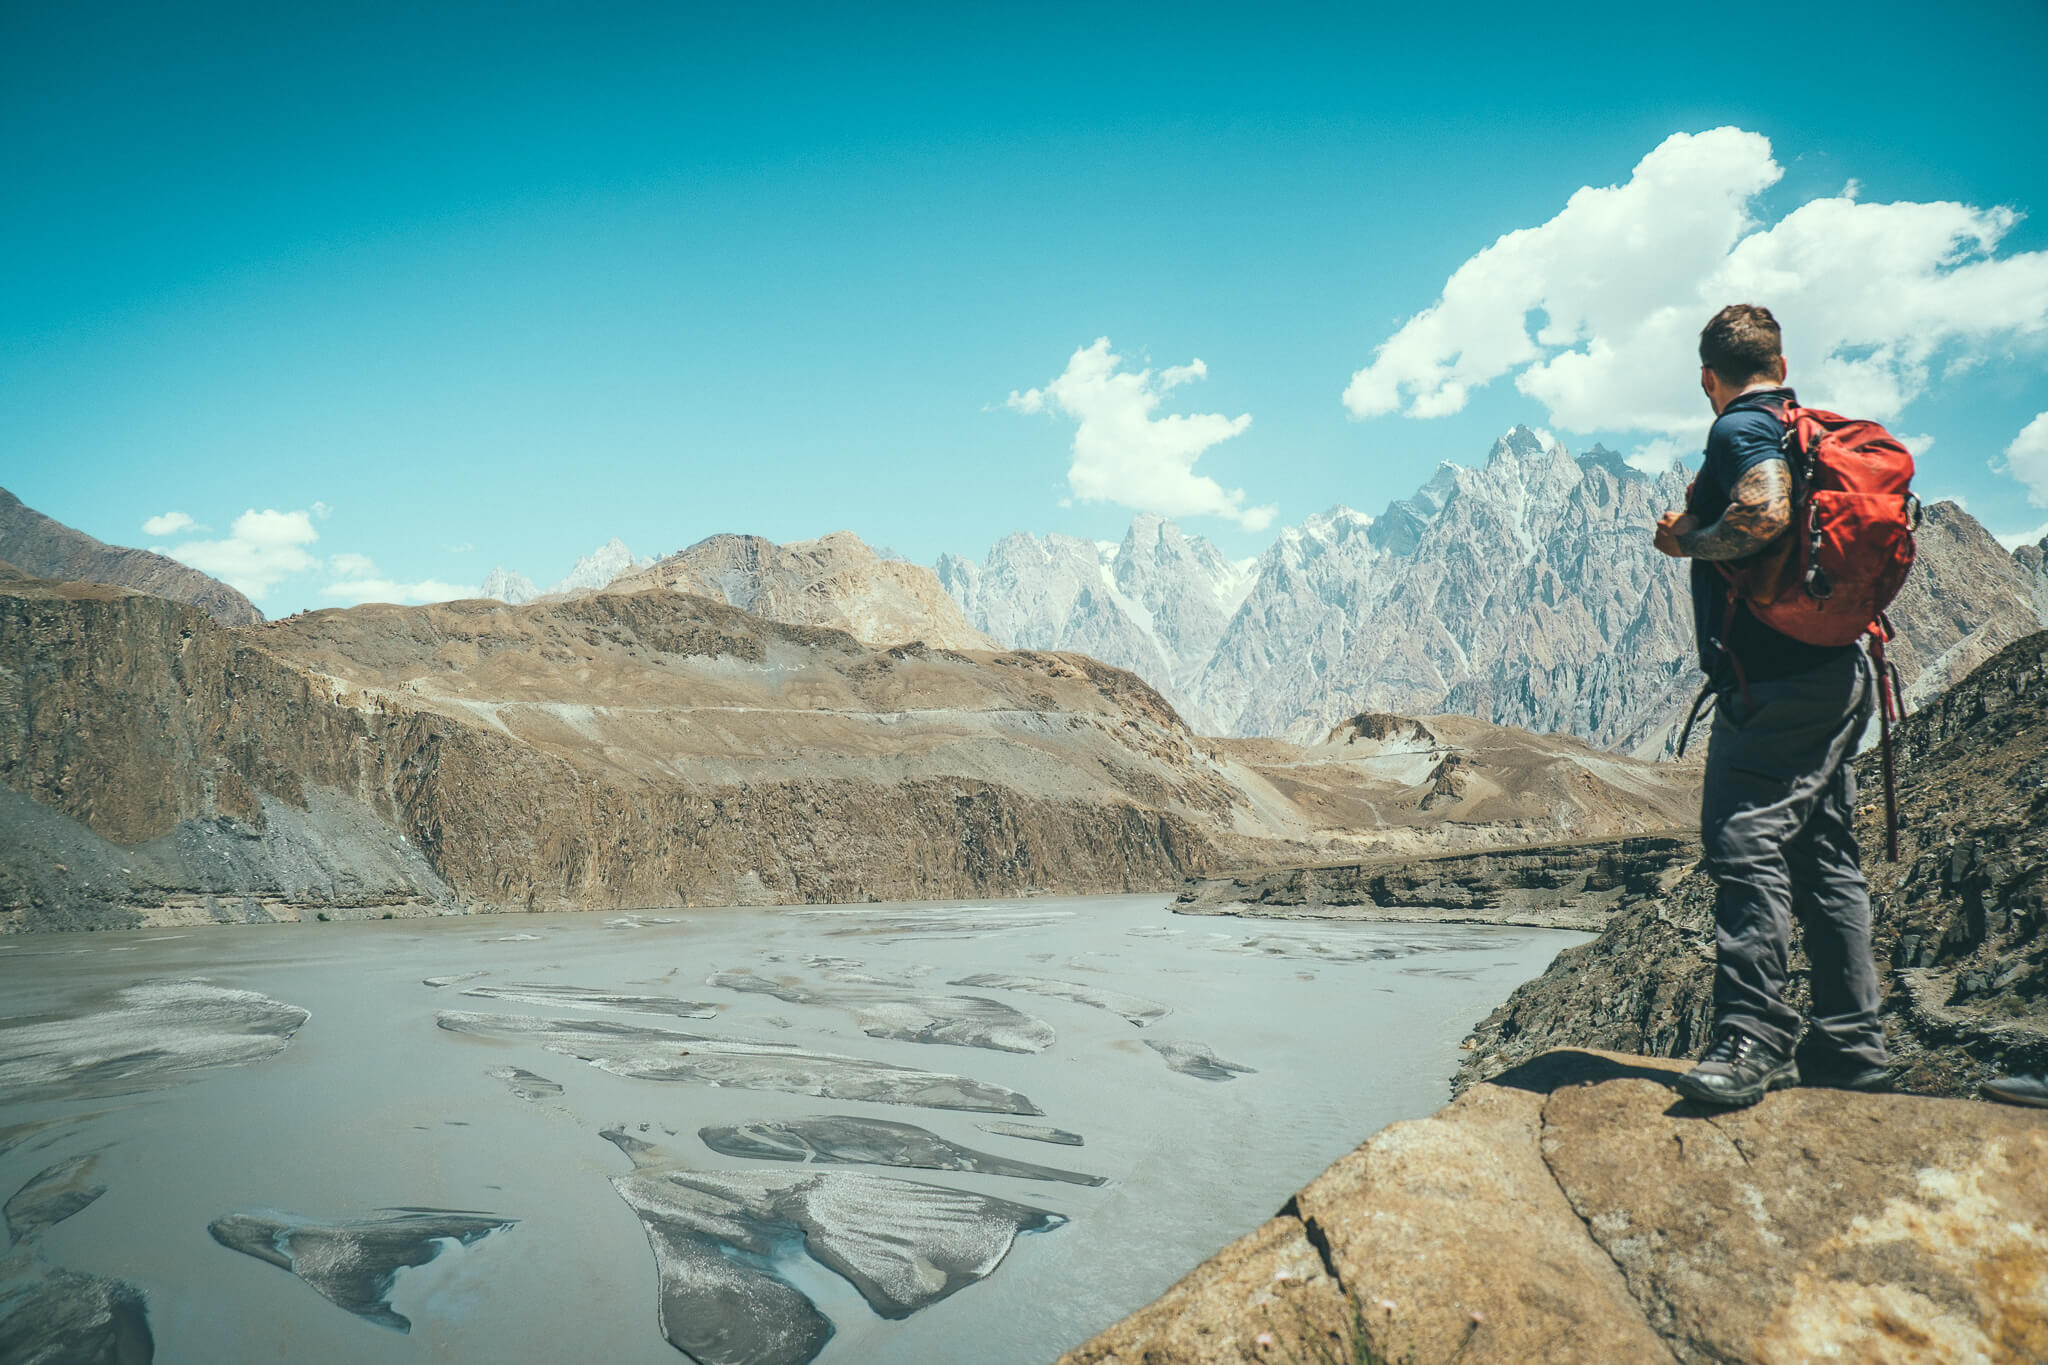 Will Hatton hiking in the Karakoram mountains of Pakistan